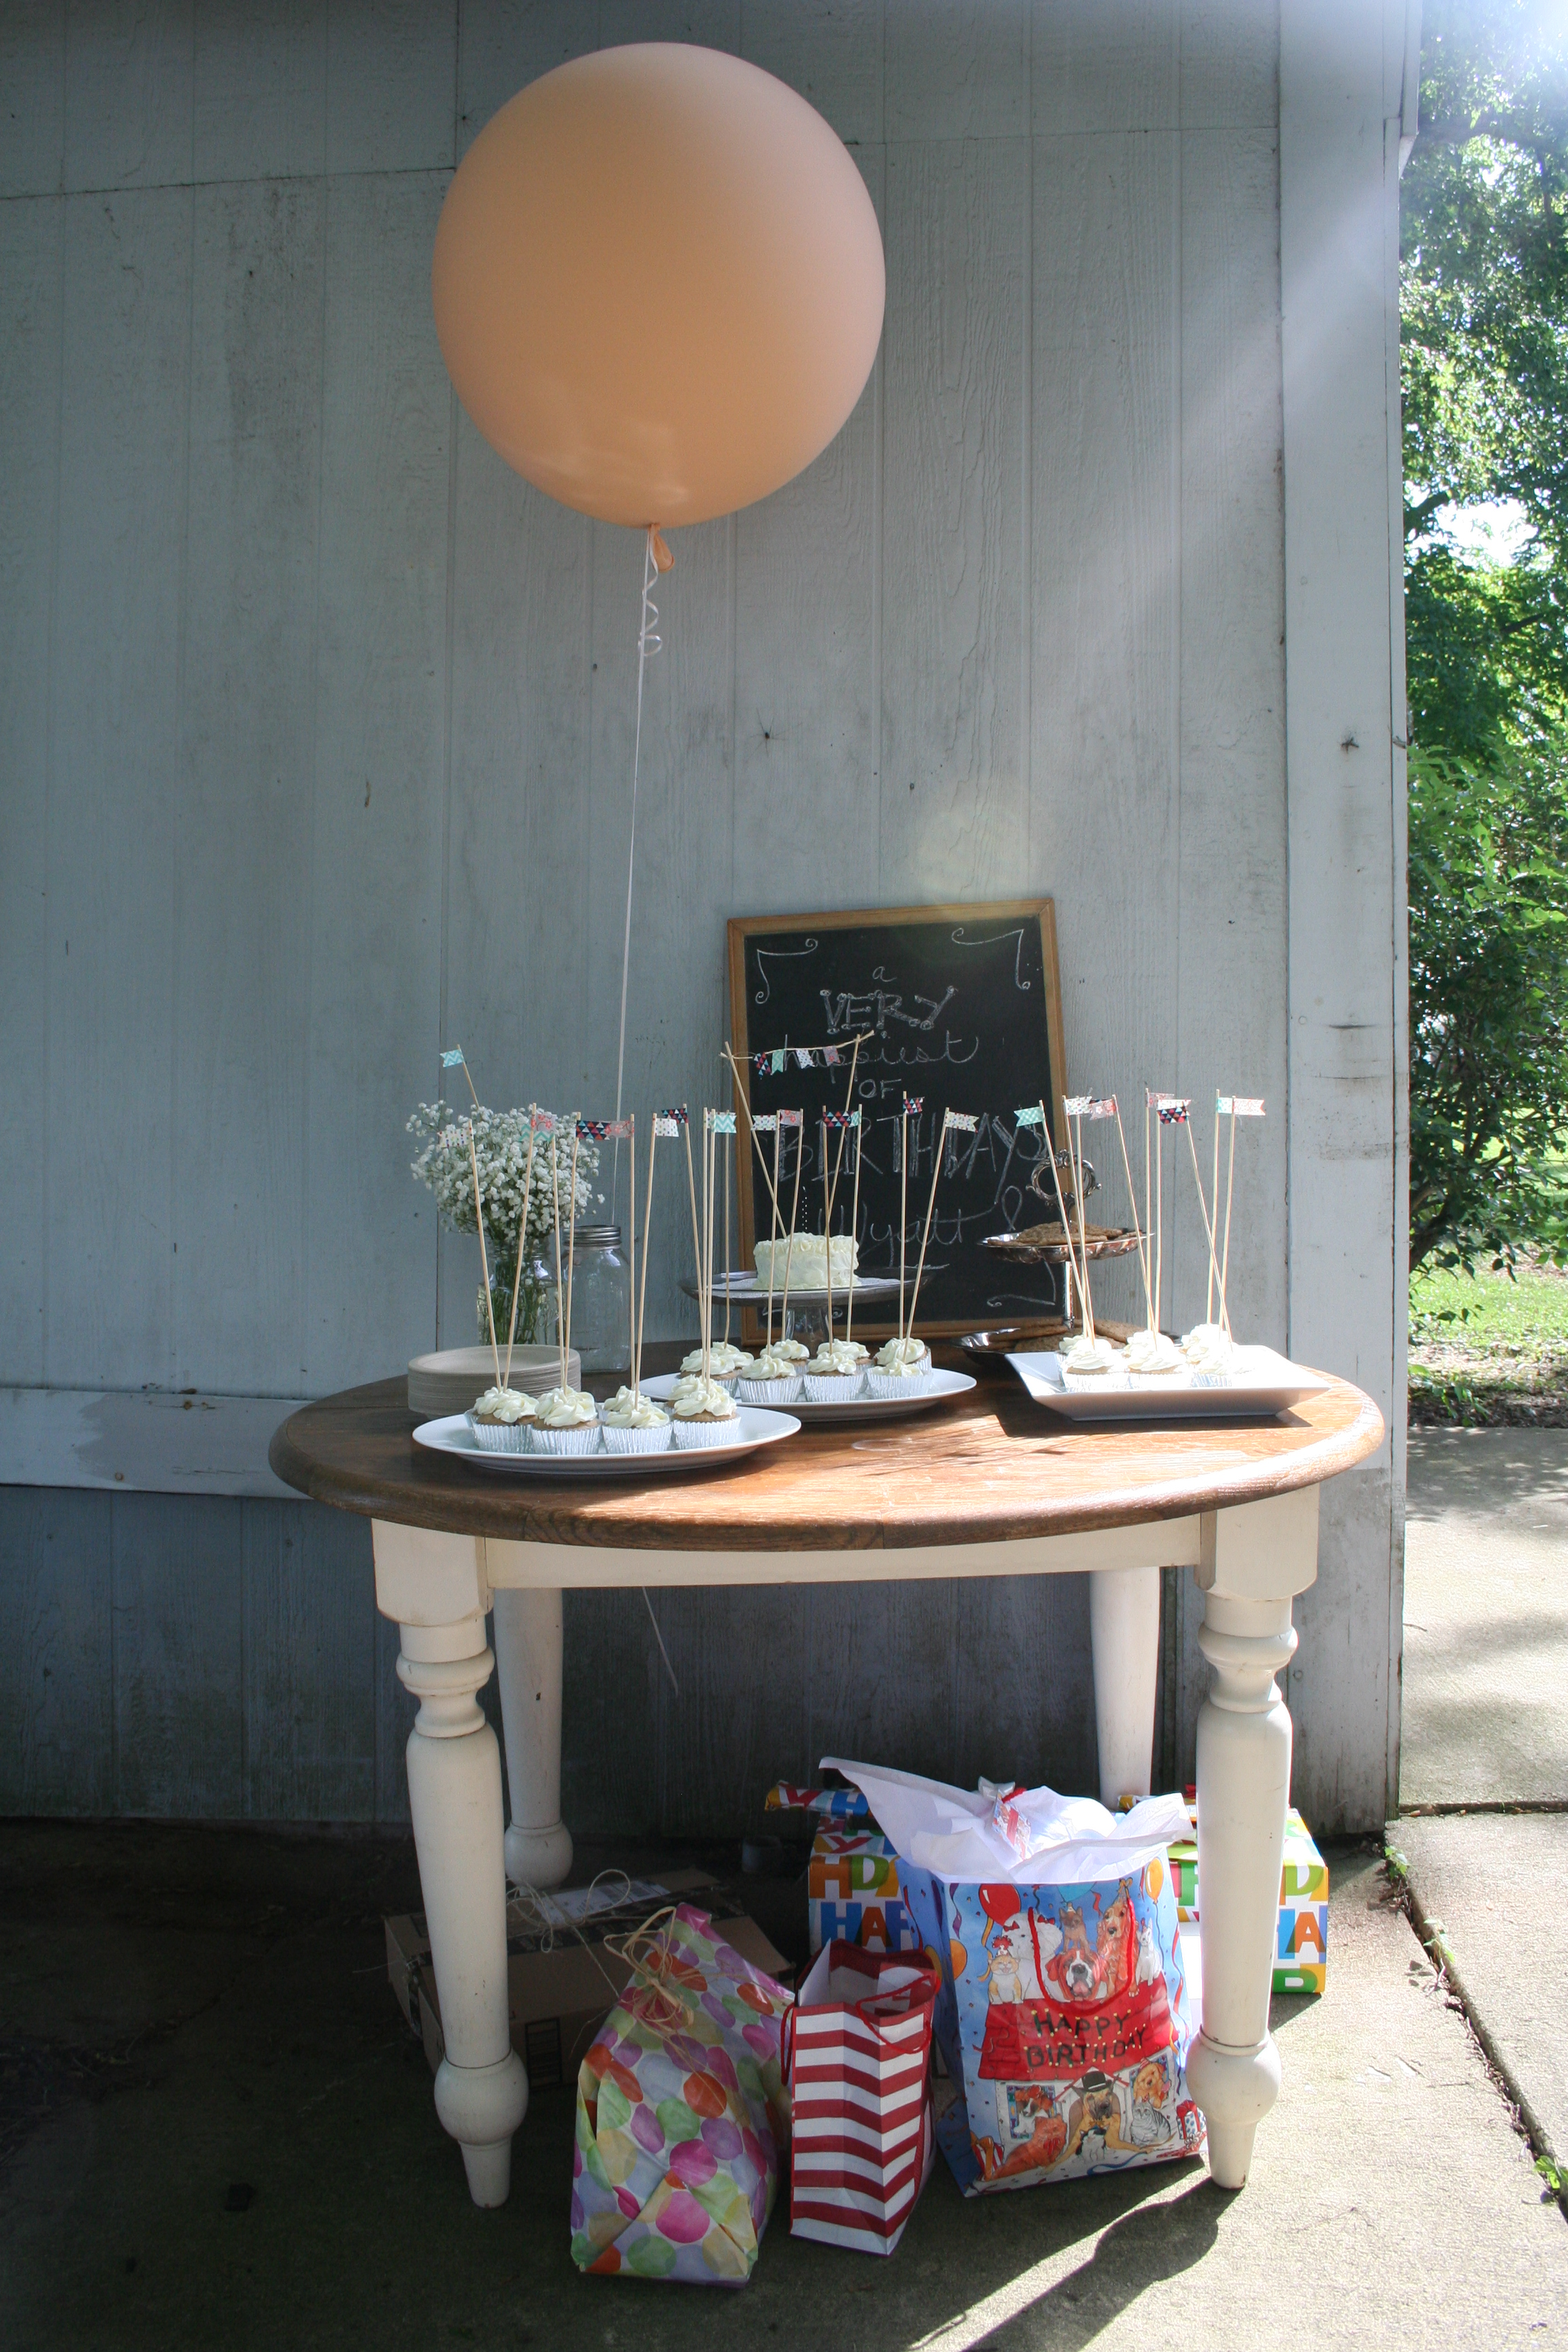 Display presents under the dessert table |thelovelylauralife.com